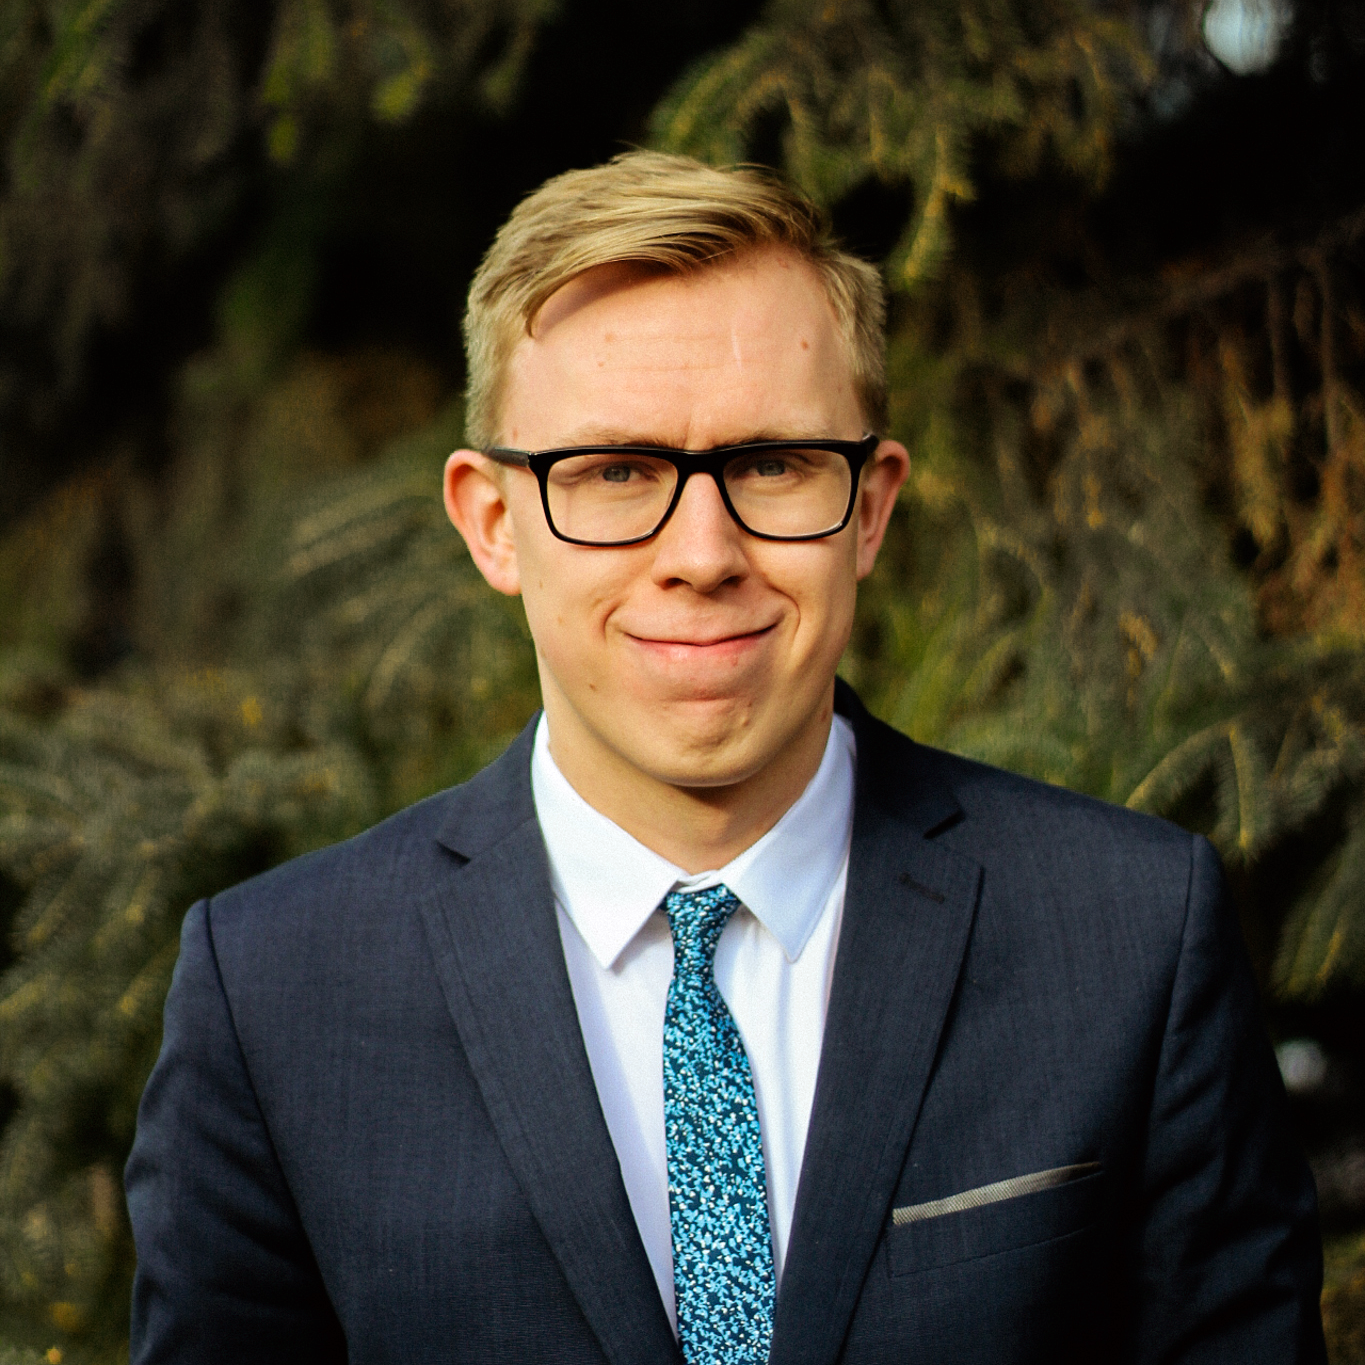 CONNOR PALINDAT - NextStep Project Manager